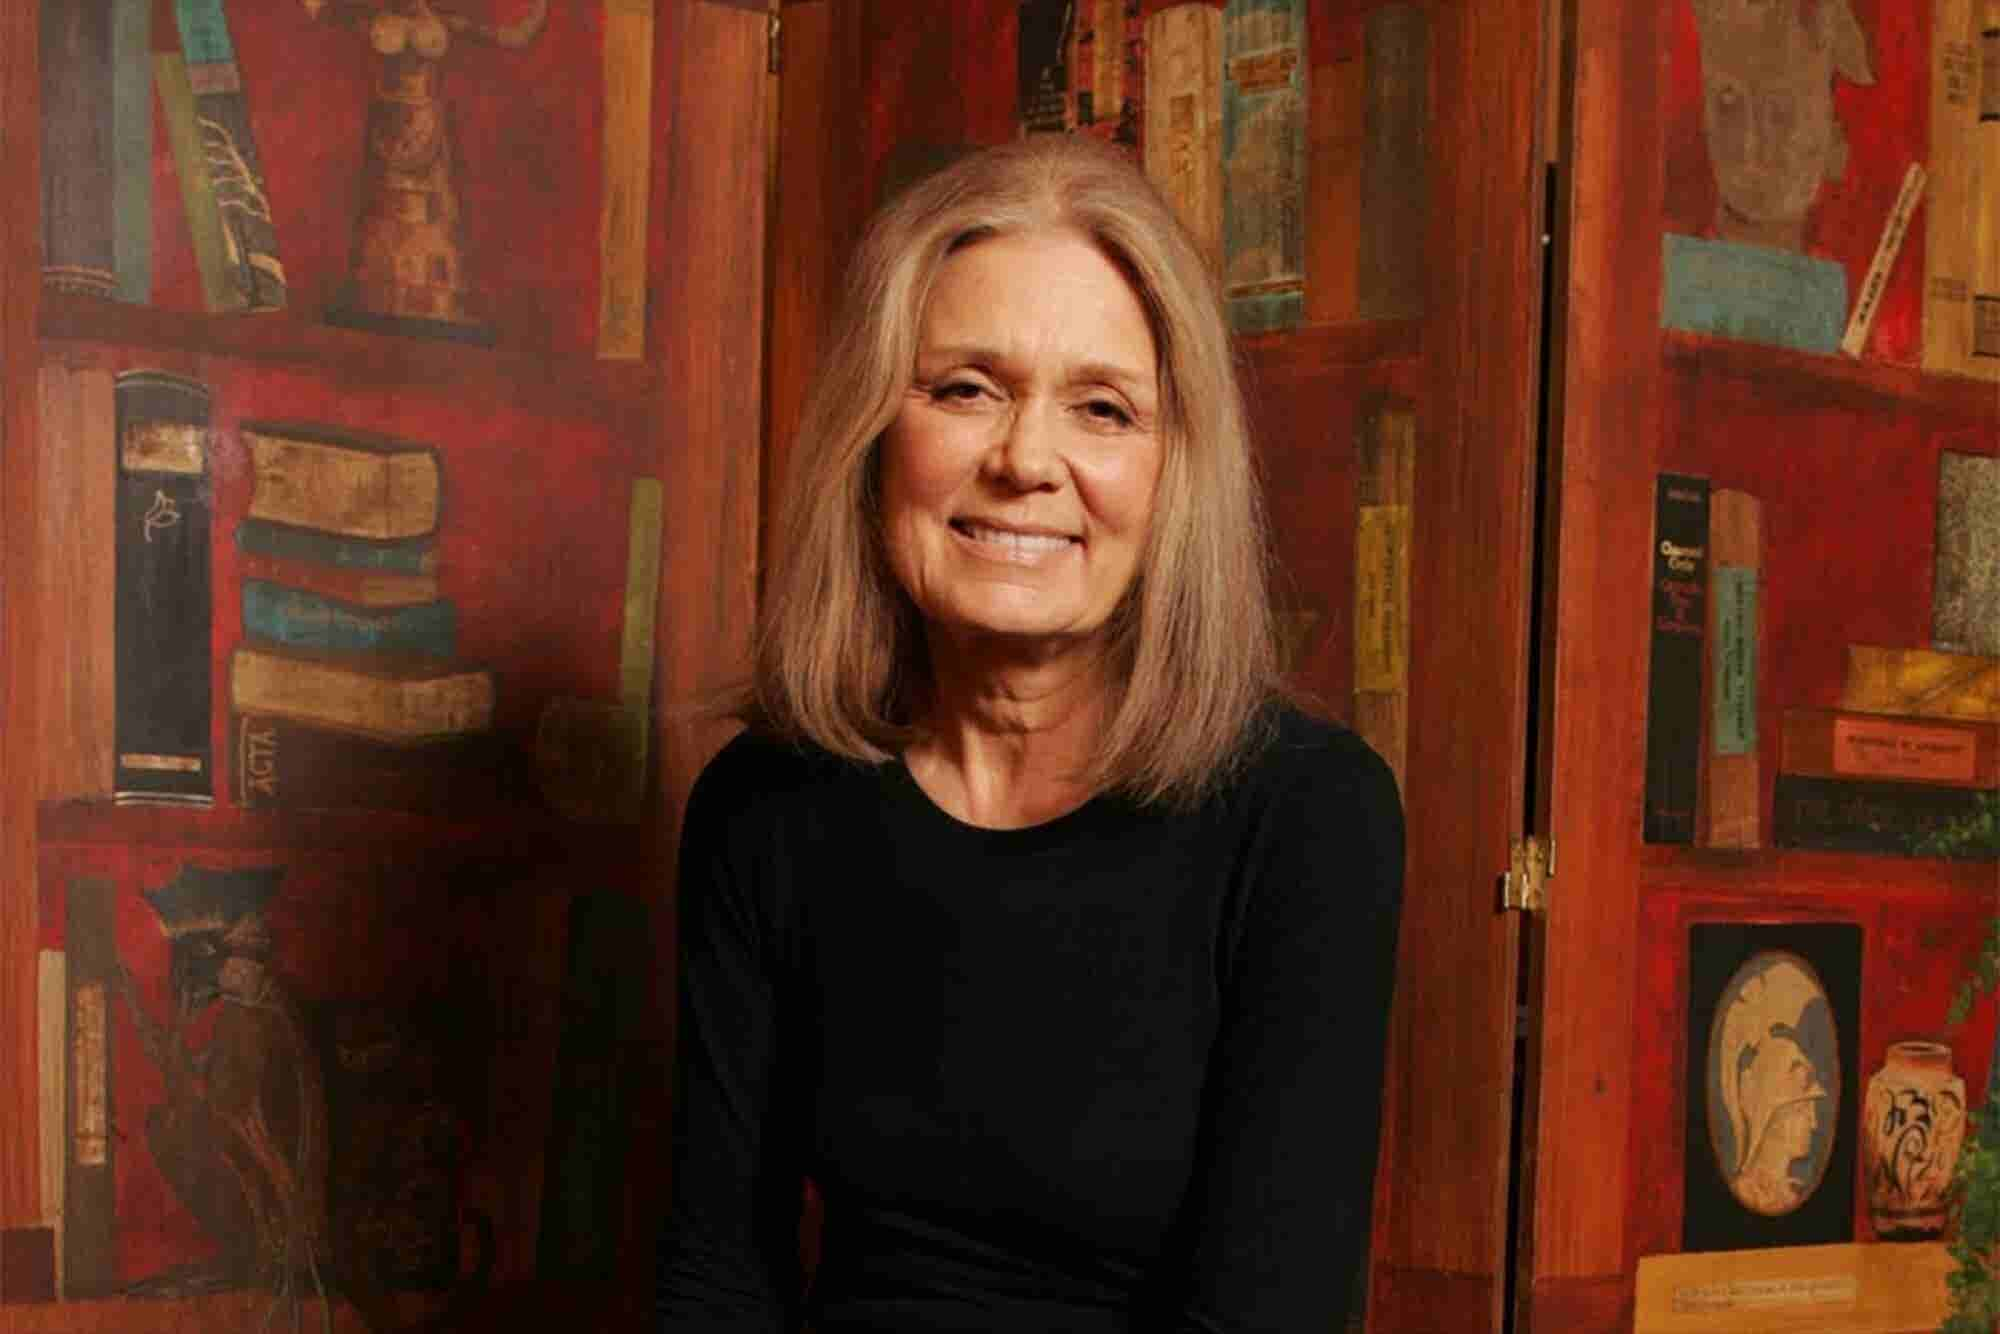 Apparel Maker Lands' End Puts Itself in Tough Spot After Removing Gloria Steinem Interview